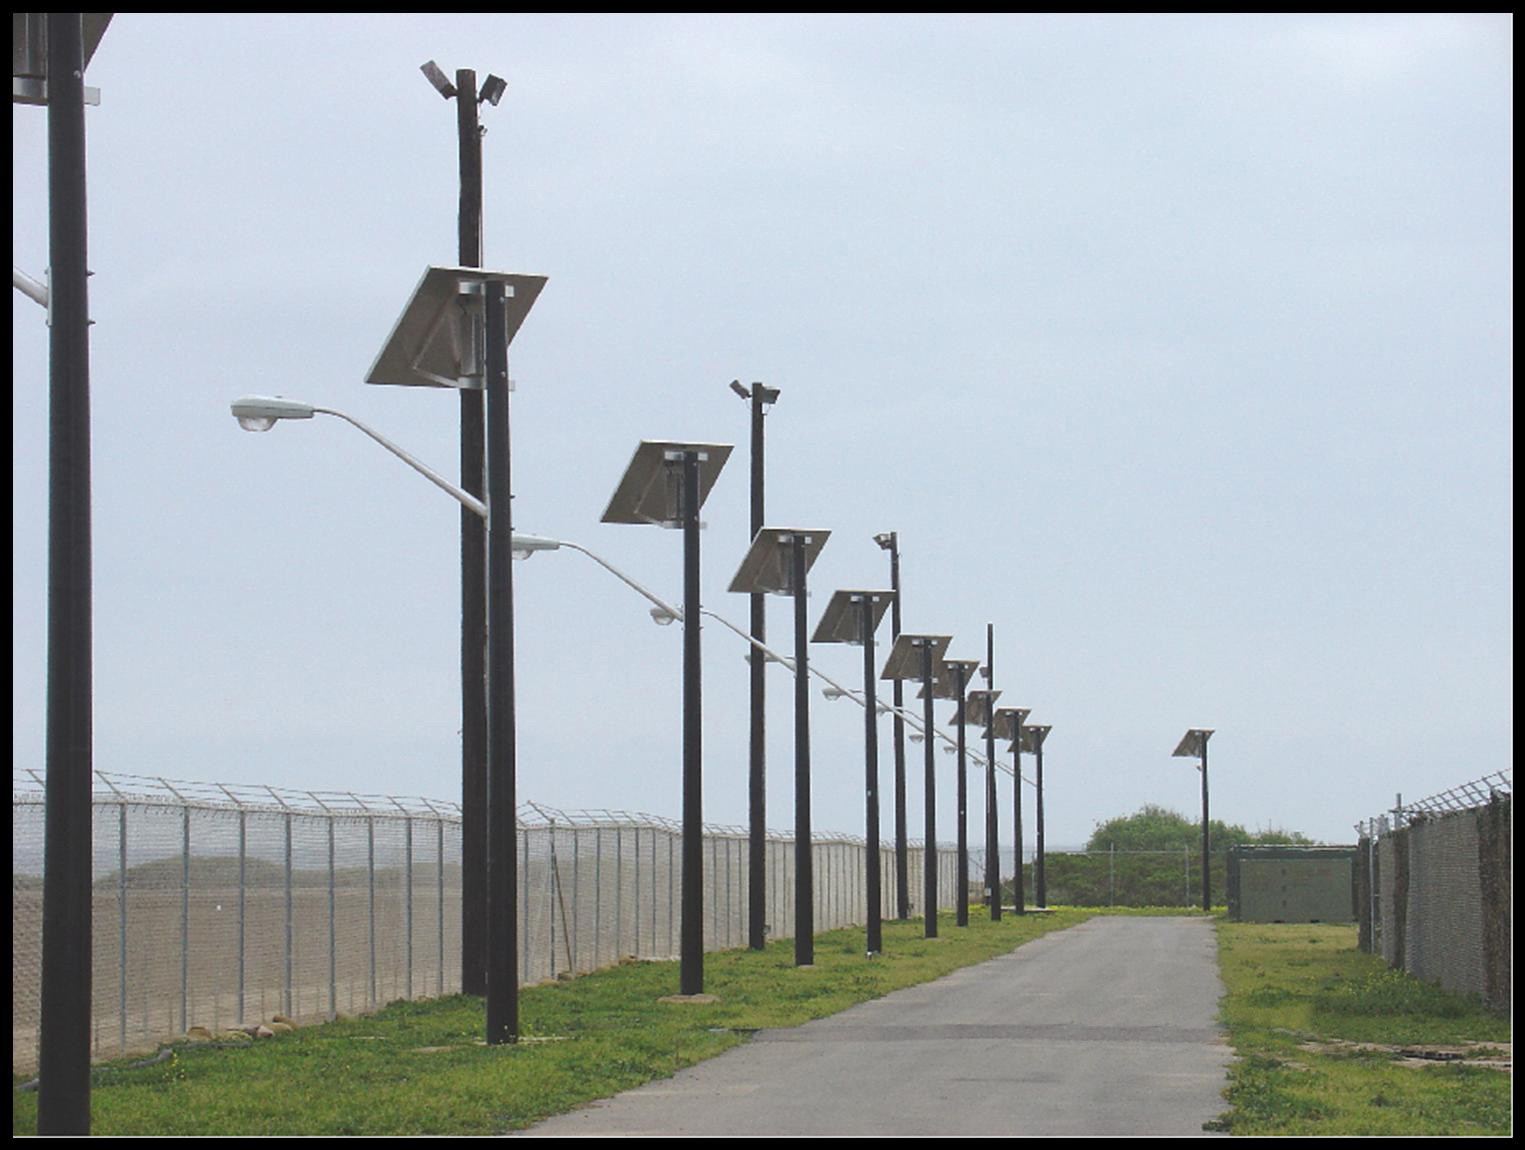 About Cmt Composite Light Poles And Lamp Posts